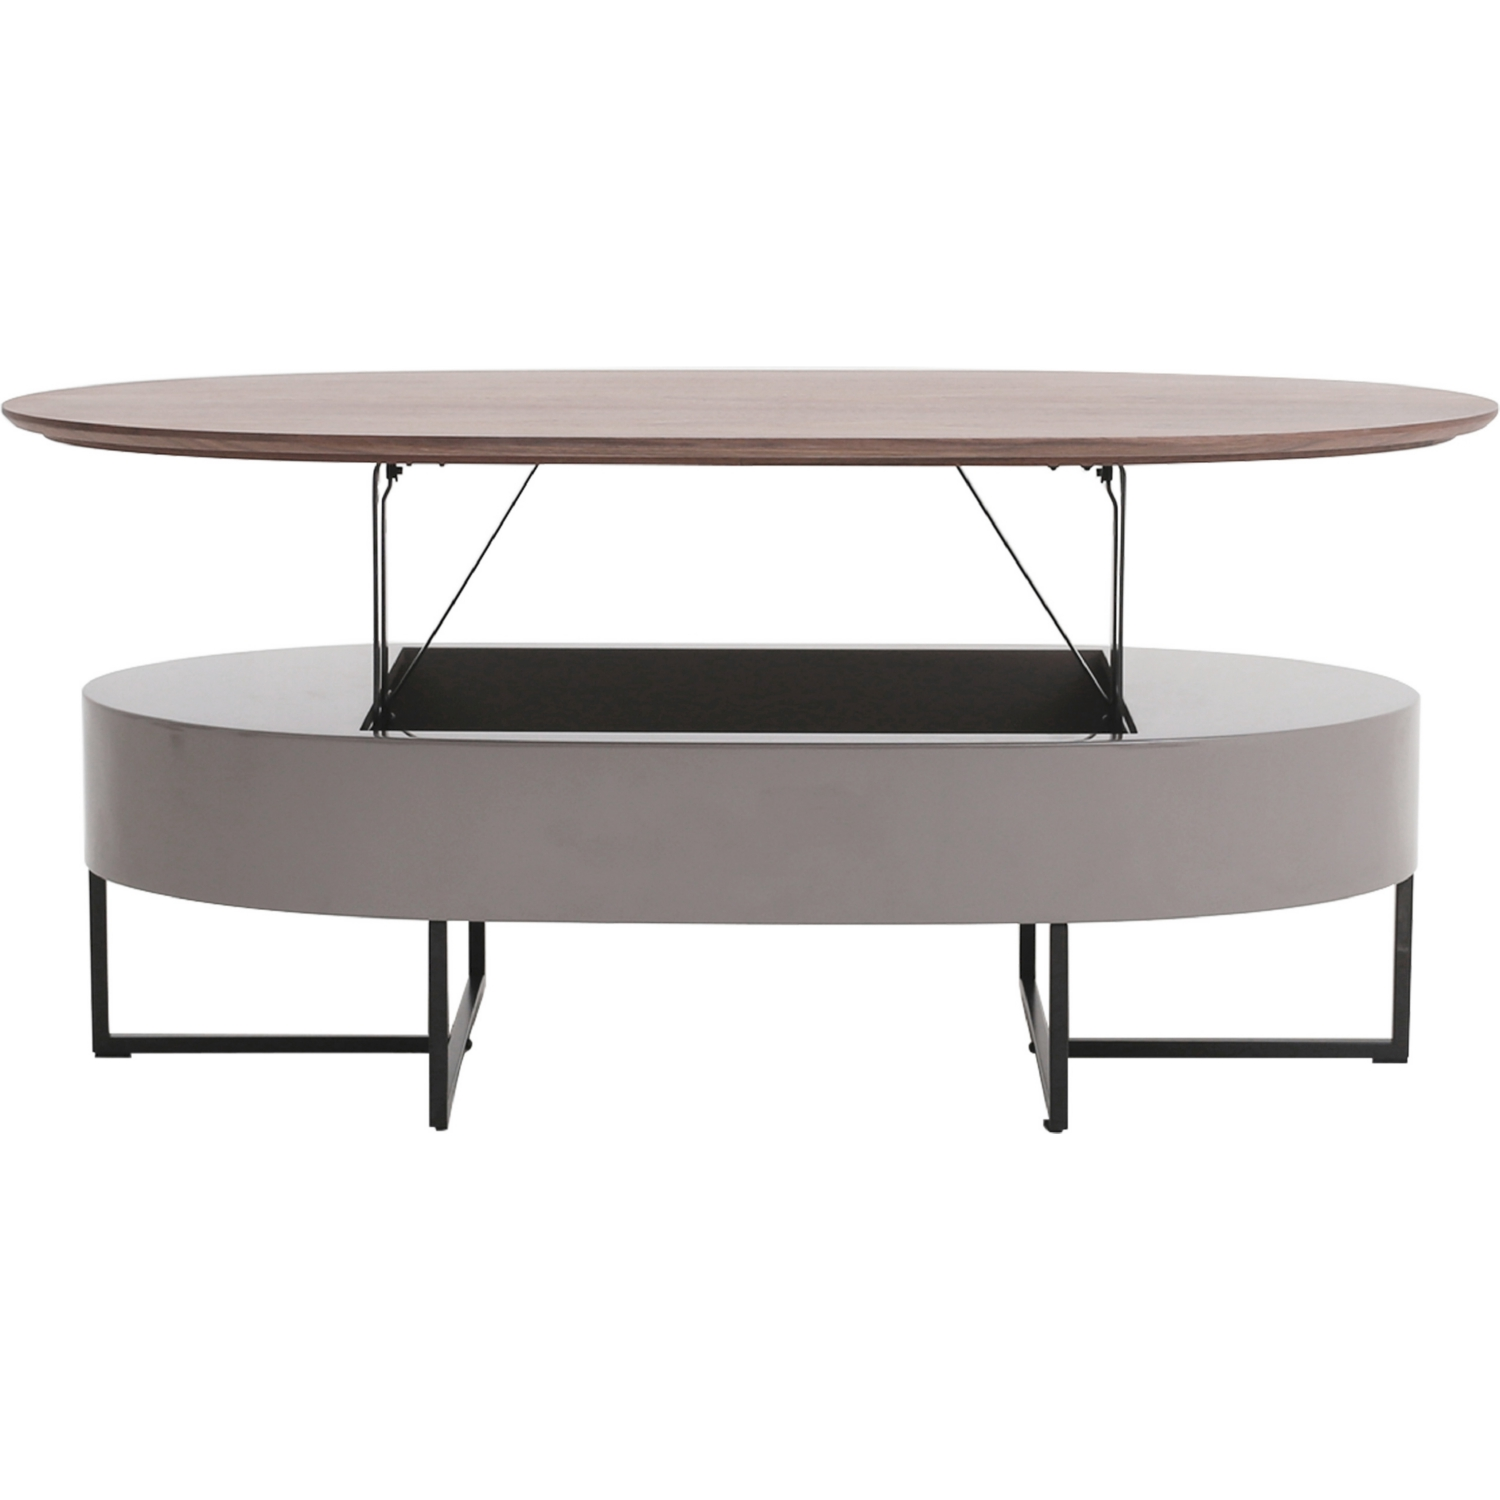 New Pacific Direct Hansel Oval Lift Top Coffee Table in